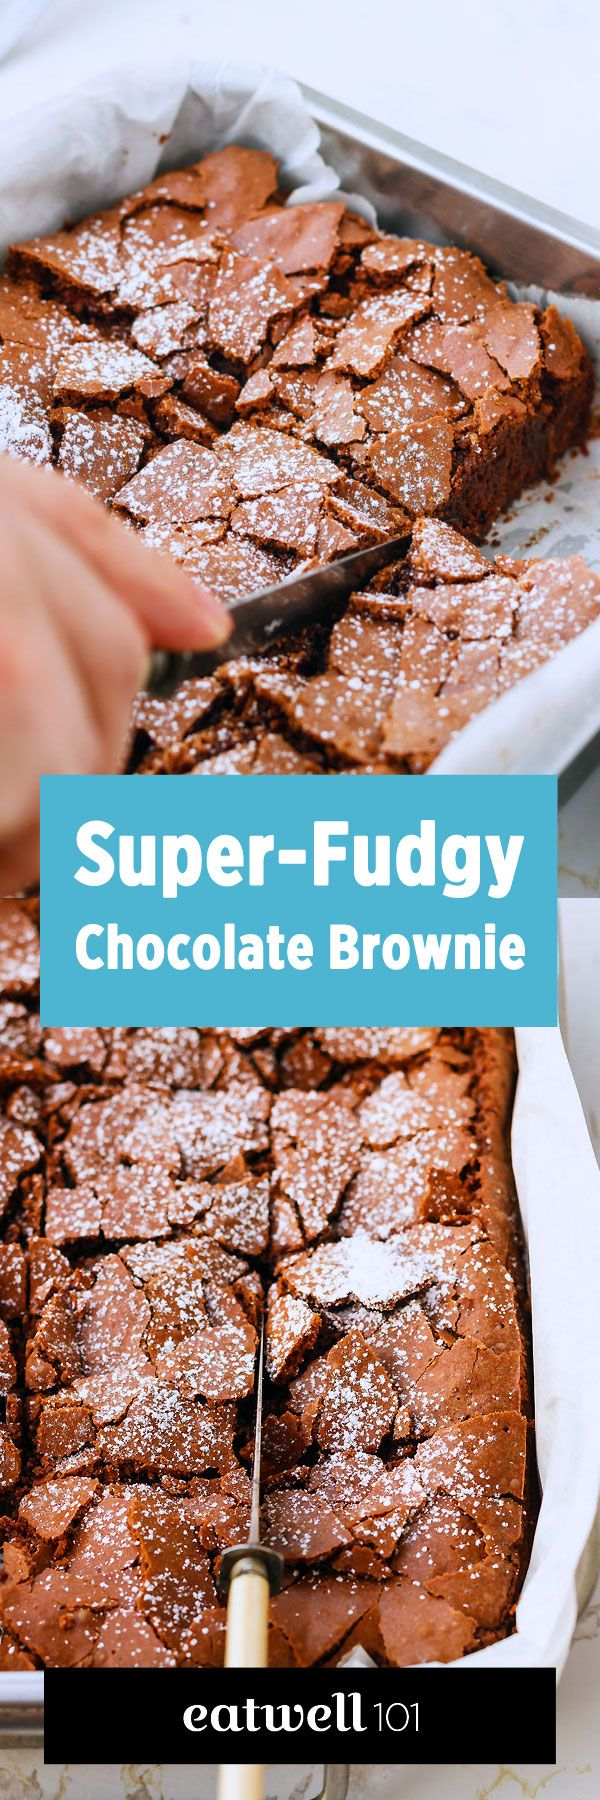 Who doesn't love homemade brownies? Fudgy, chocolatey, gooey, thick… you're warned: this homemade brownie recipe is totally addictive. We guarantee you can't eat just one square of this decadent de… Via Eatwell101